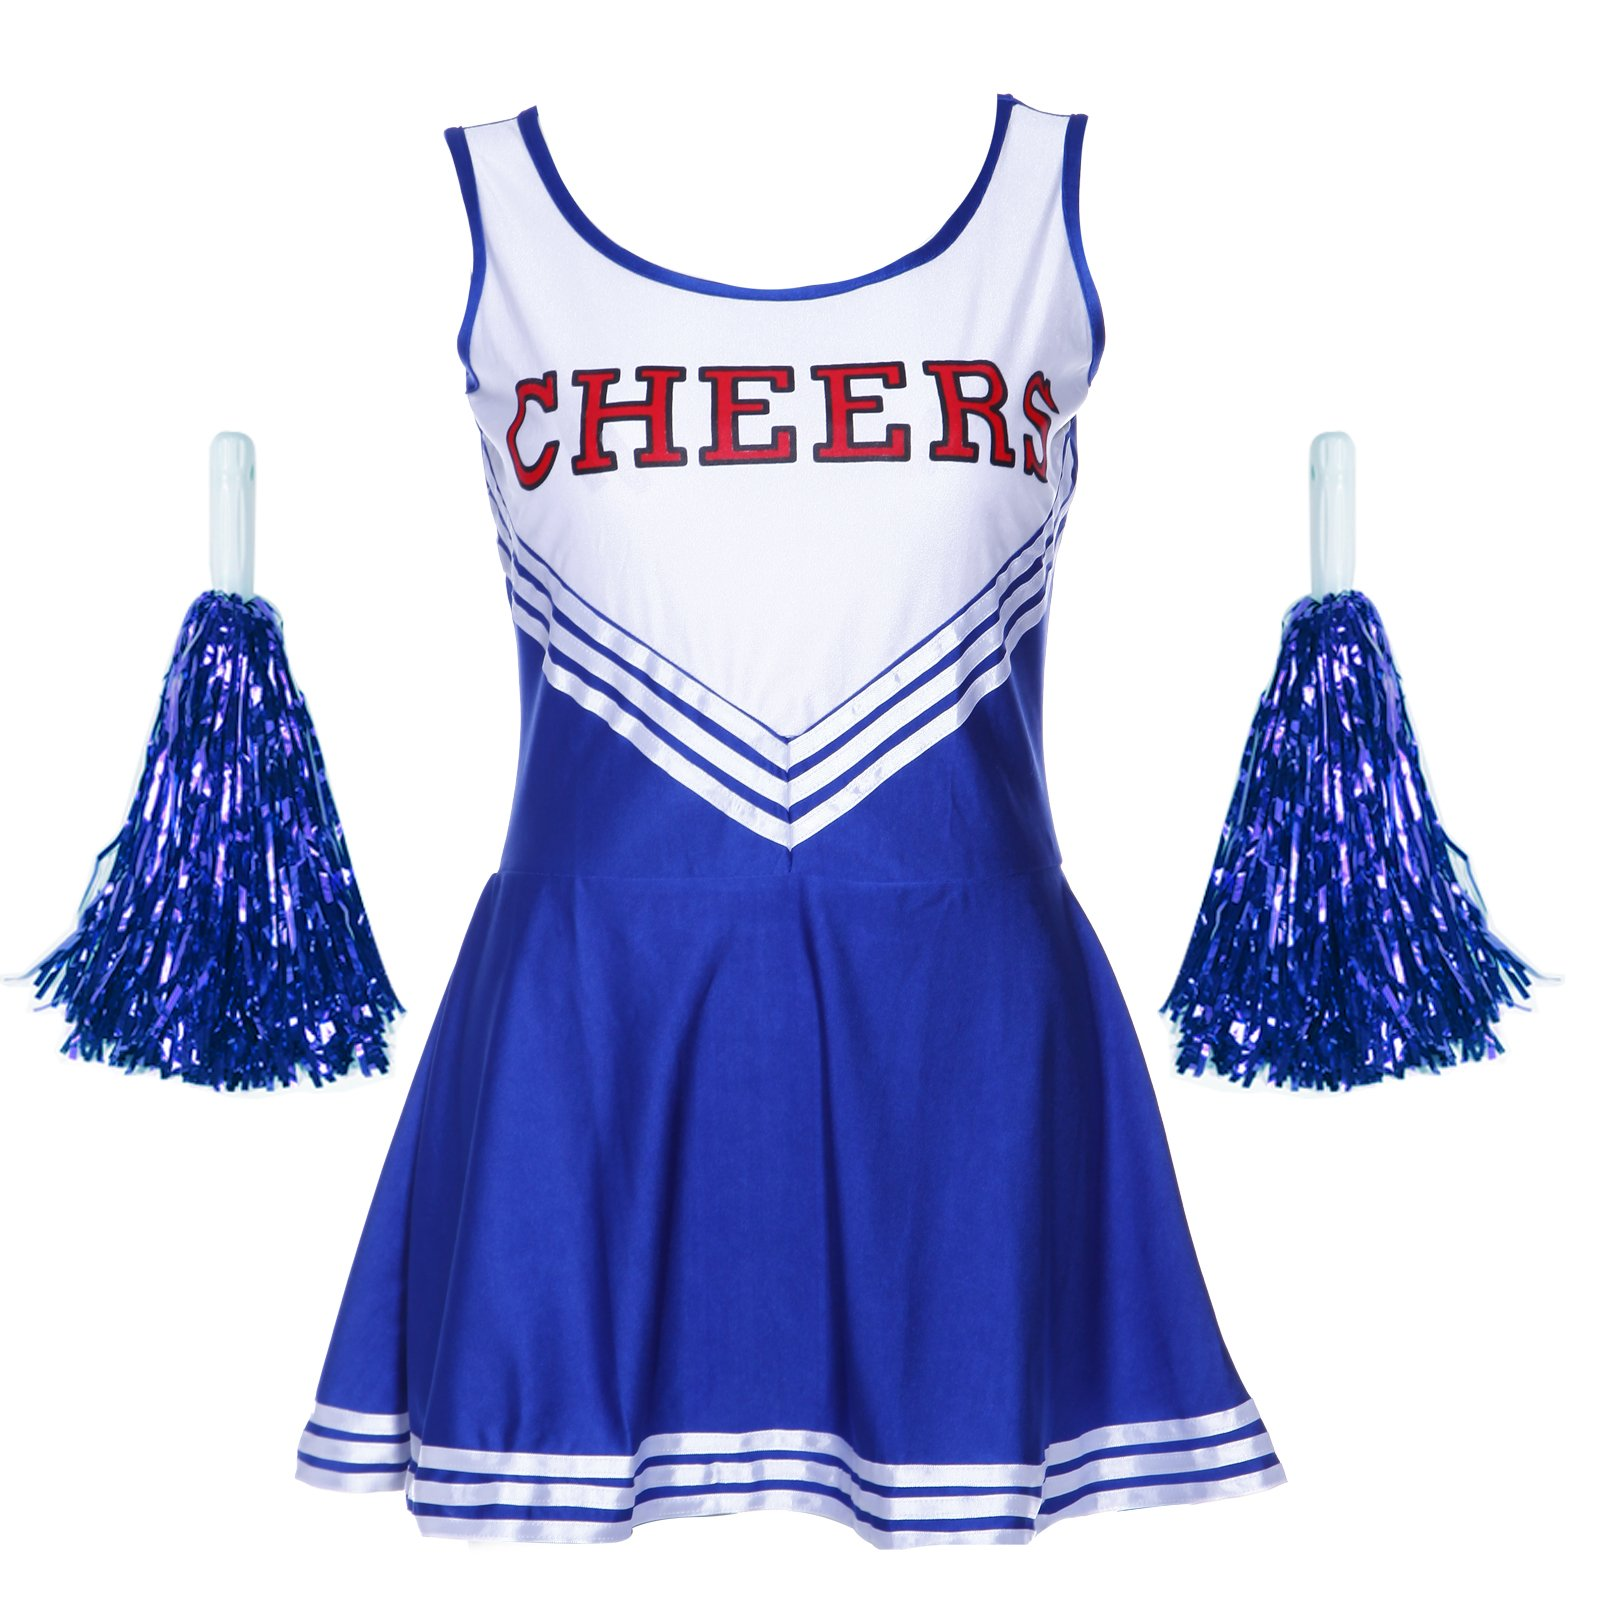 New Sale Tank Dress Blue fancy dress cheerleader pom pom girl party girl XS 28-30 football school(China (Mainland))